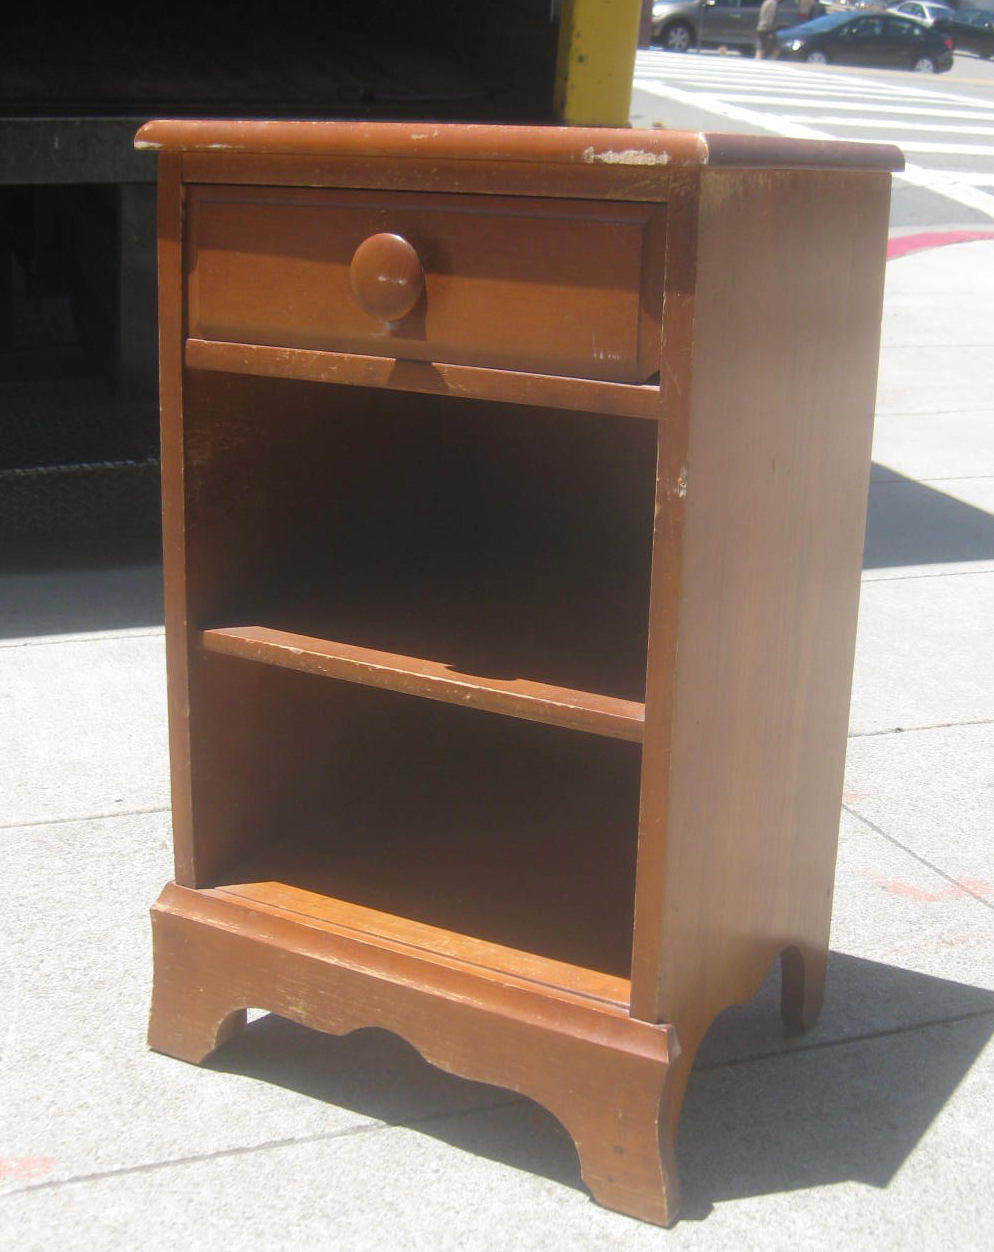 UHURU FURNITURE & COLLECTIBLES: SOLD - Maple Night Stand - $25